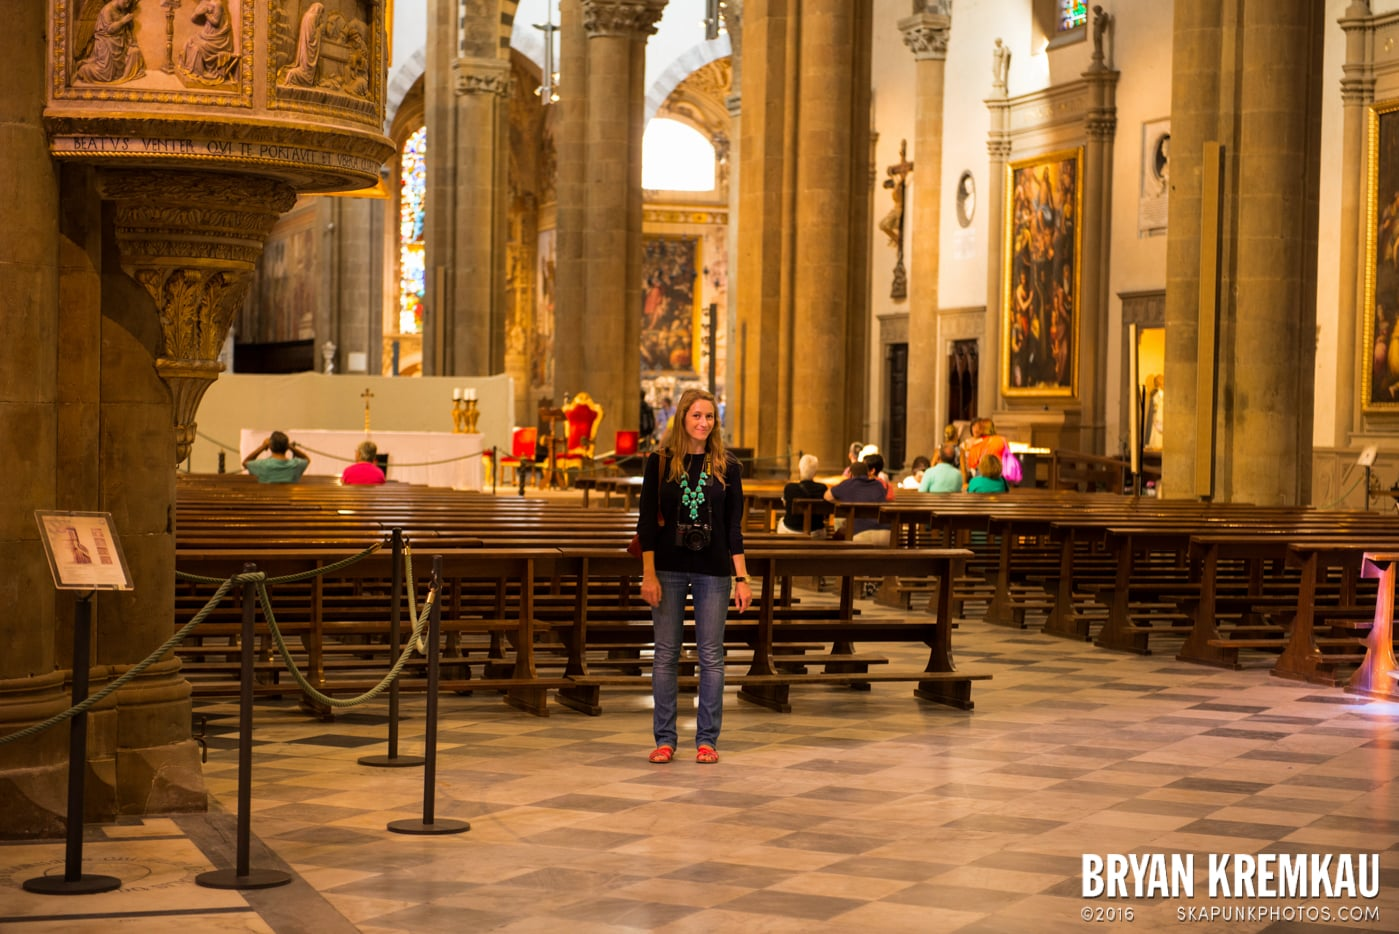 Italy Vacation - Day 11: Florence - 9.19.13 (35)